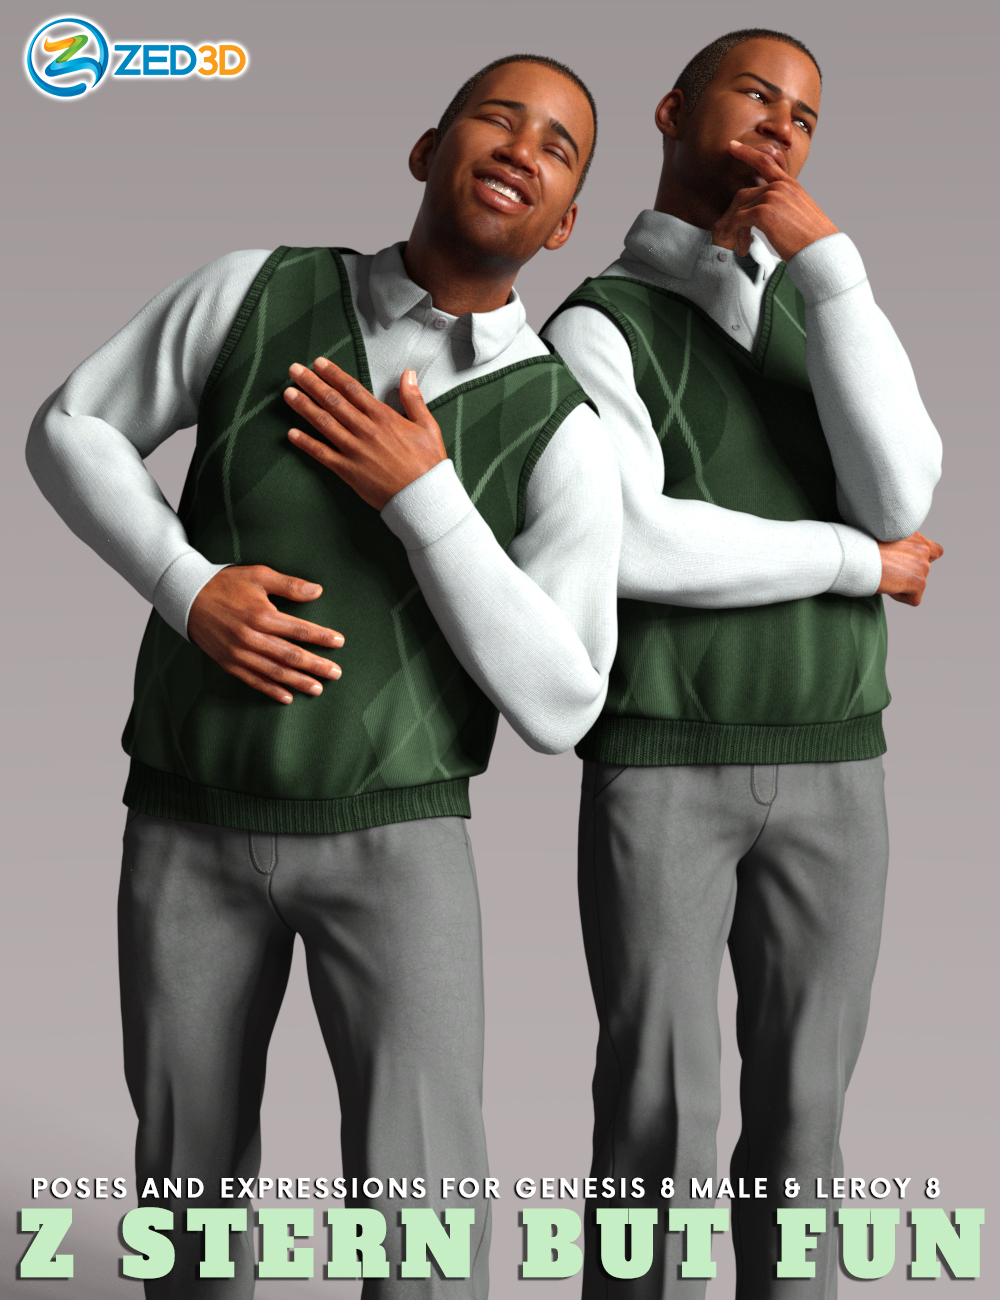 Z Stern But Fun Poses and Expressions for Leroy 8 by: Zeddicuss, 3D Models by Daz 3D